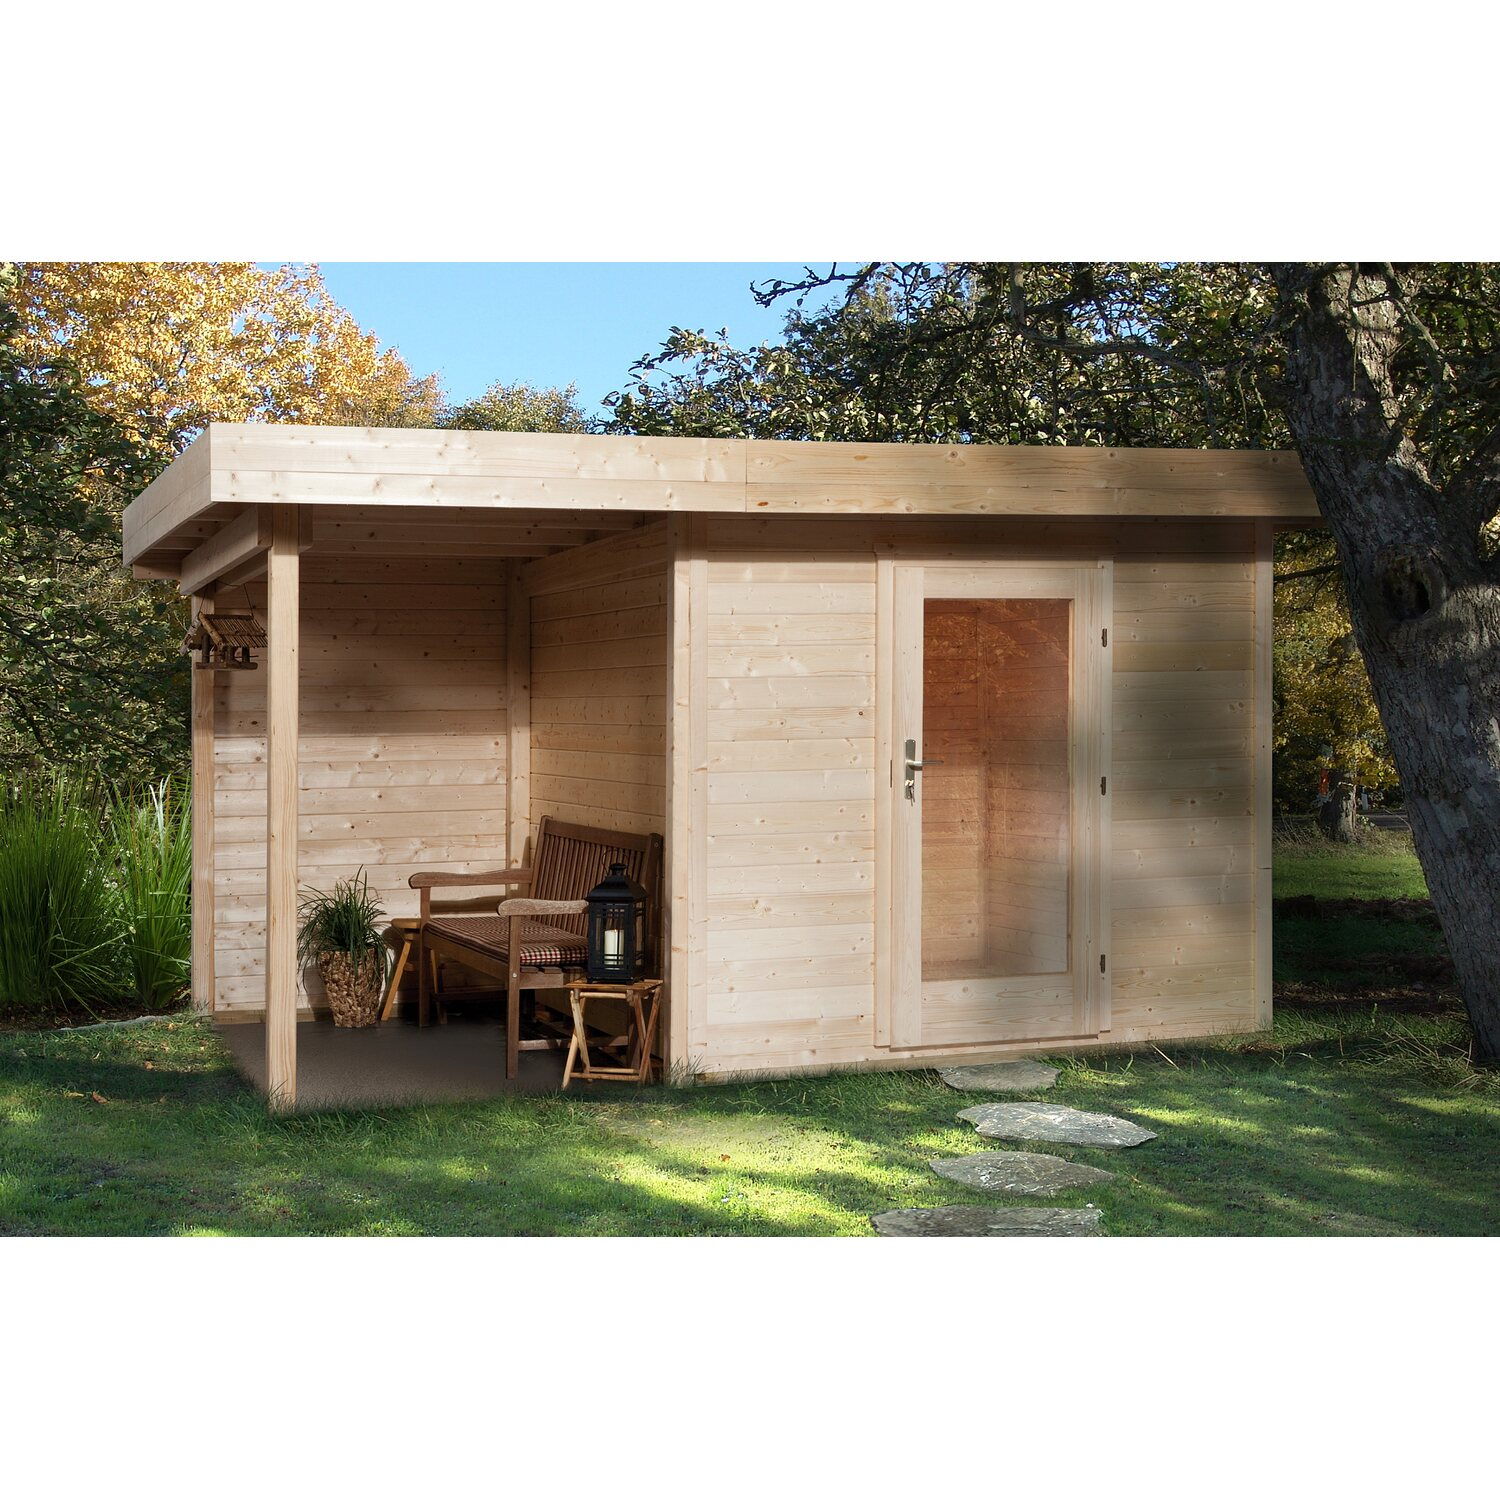 obi holz gartenhaus florenz a gr e 2 natur bxt 385 x 210. Black Bedroom Furniture Sets. Home Design Ideas